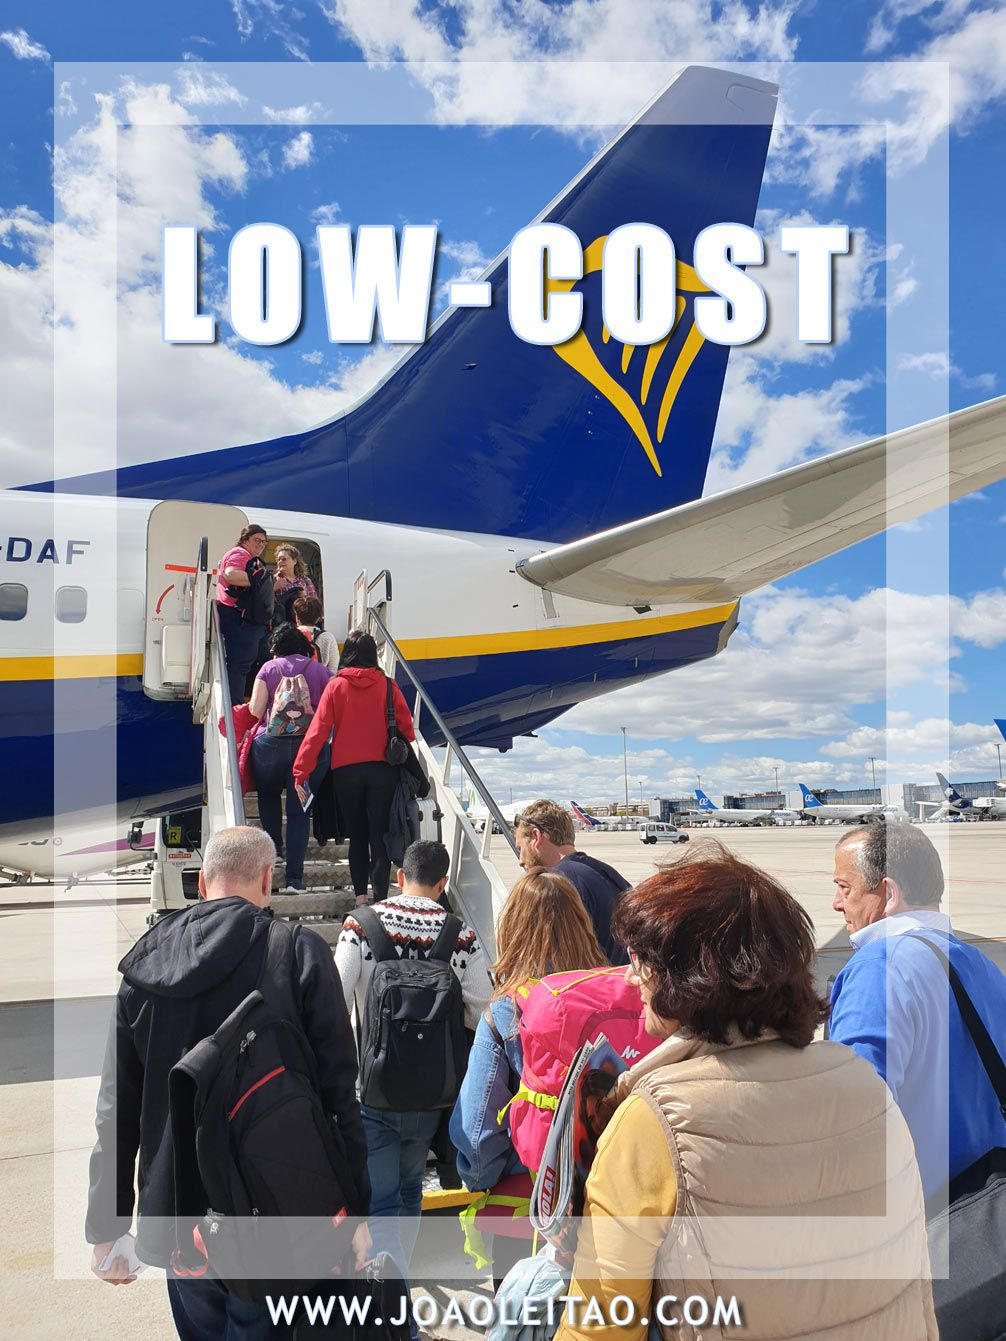 List Of All The Lowcost Airlines In The World Listed By